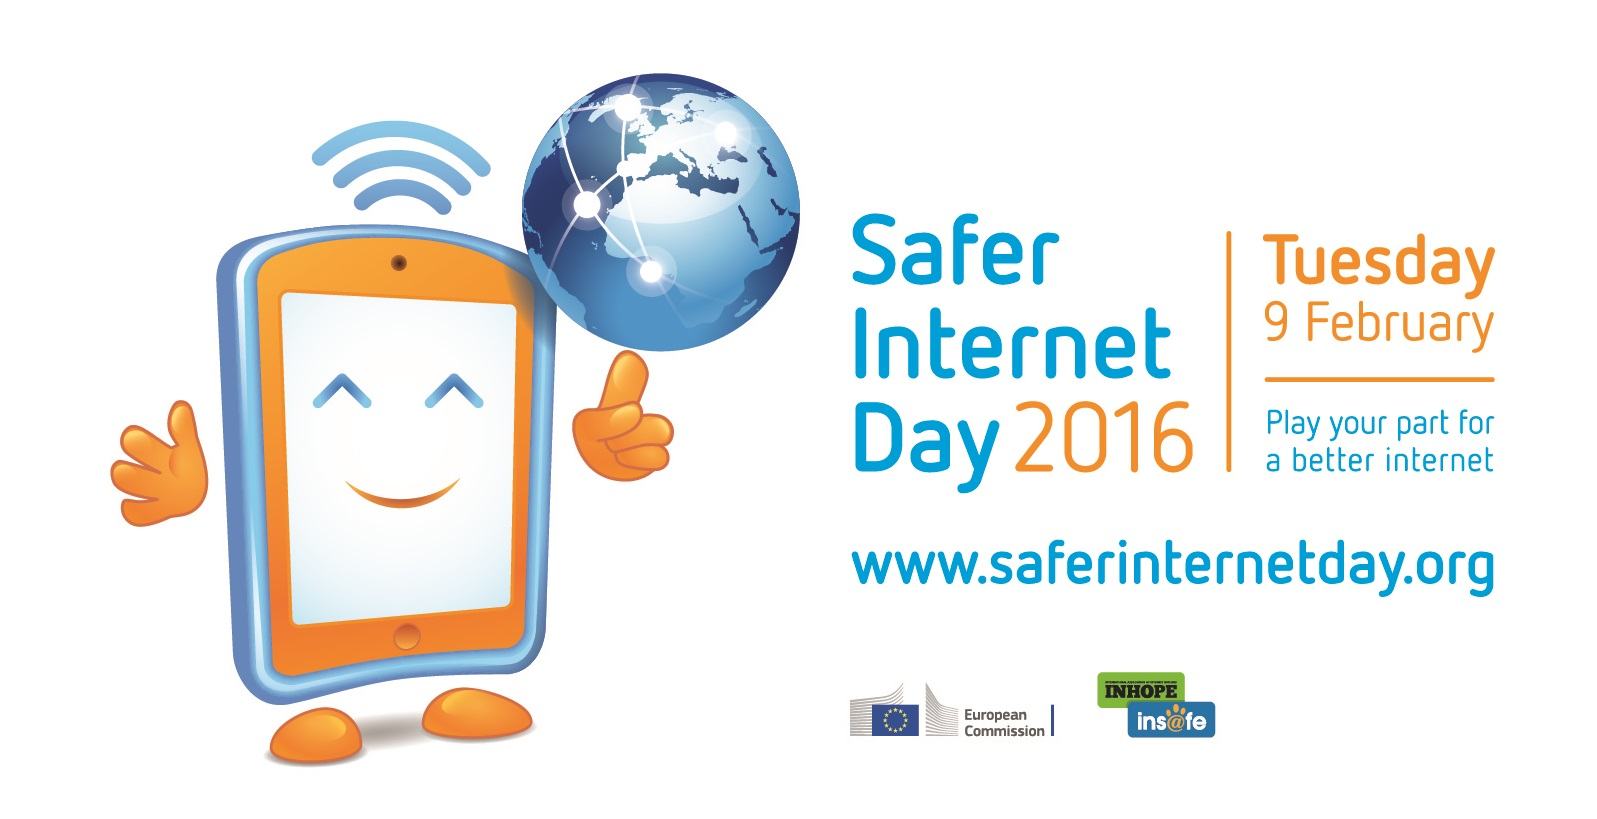 Safer Internet Day 2016 logo